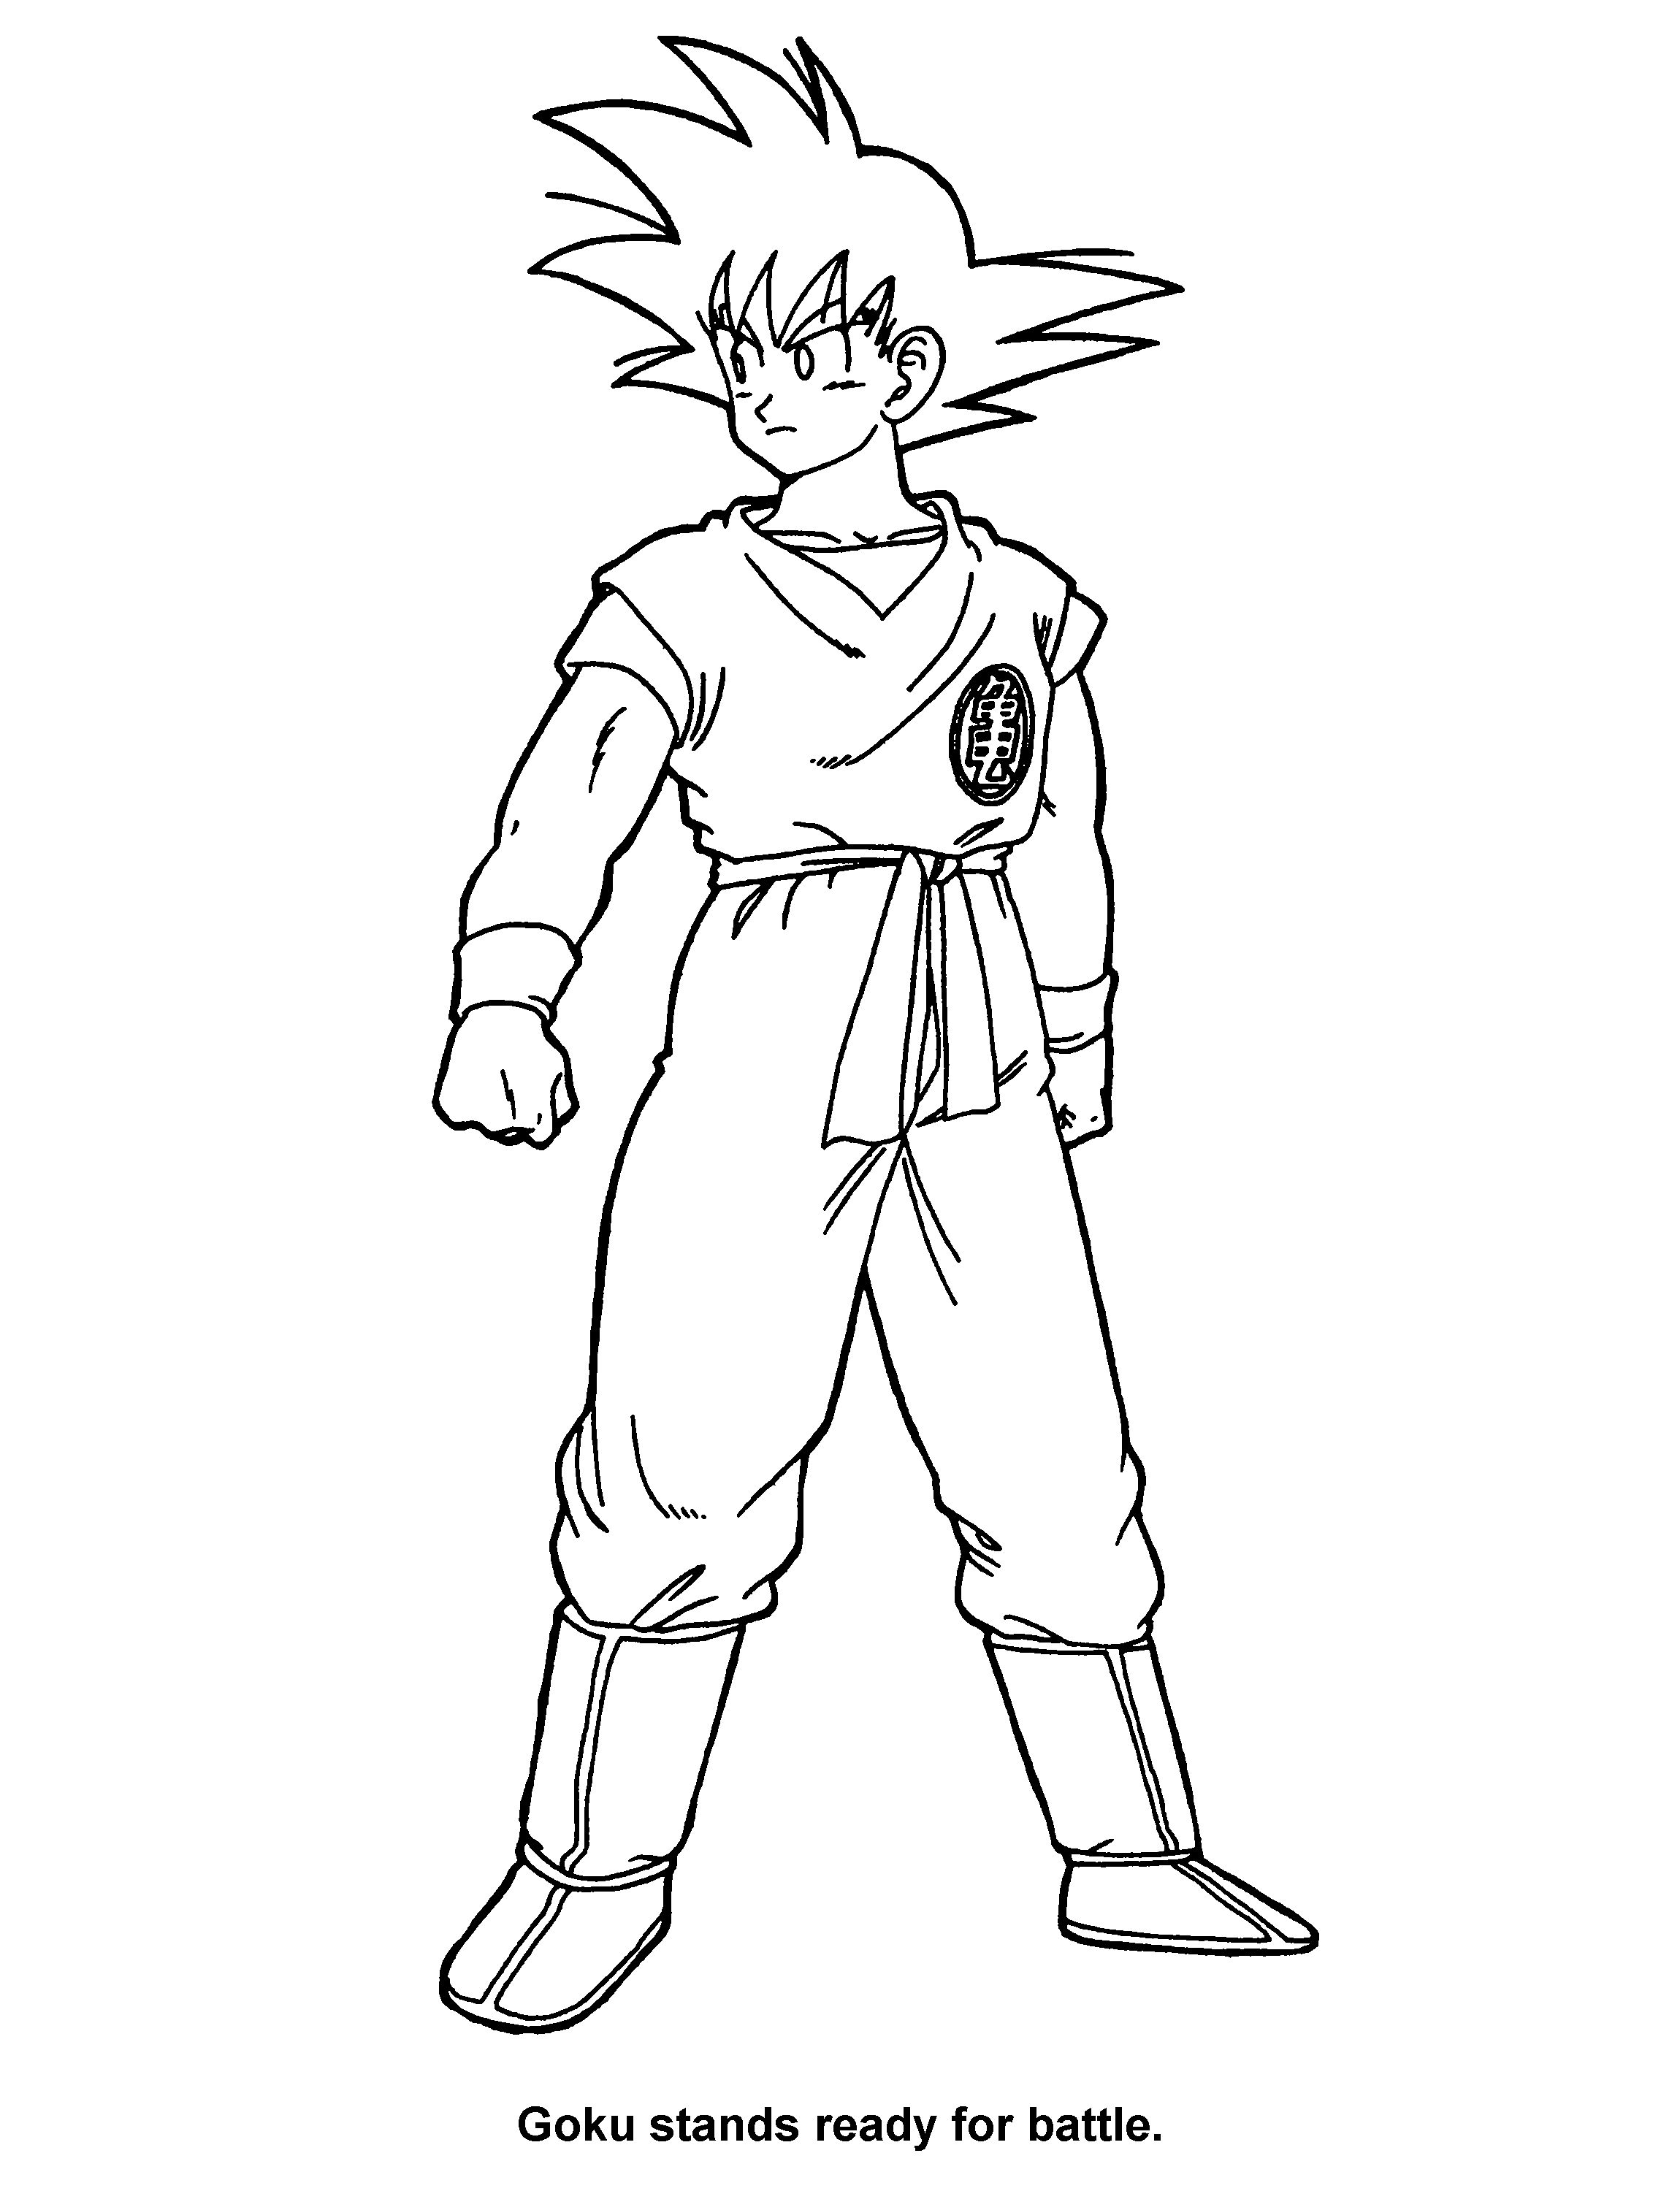 dbz coloring pages - r=dragonball z